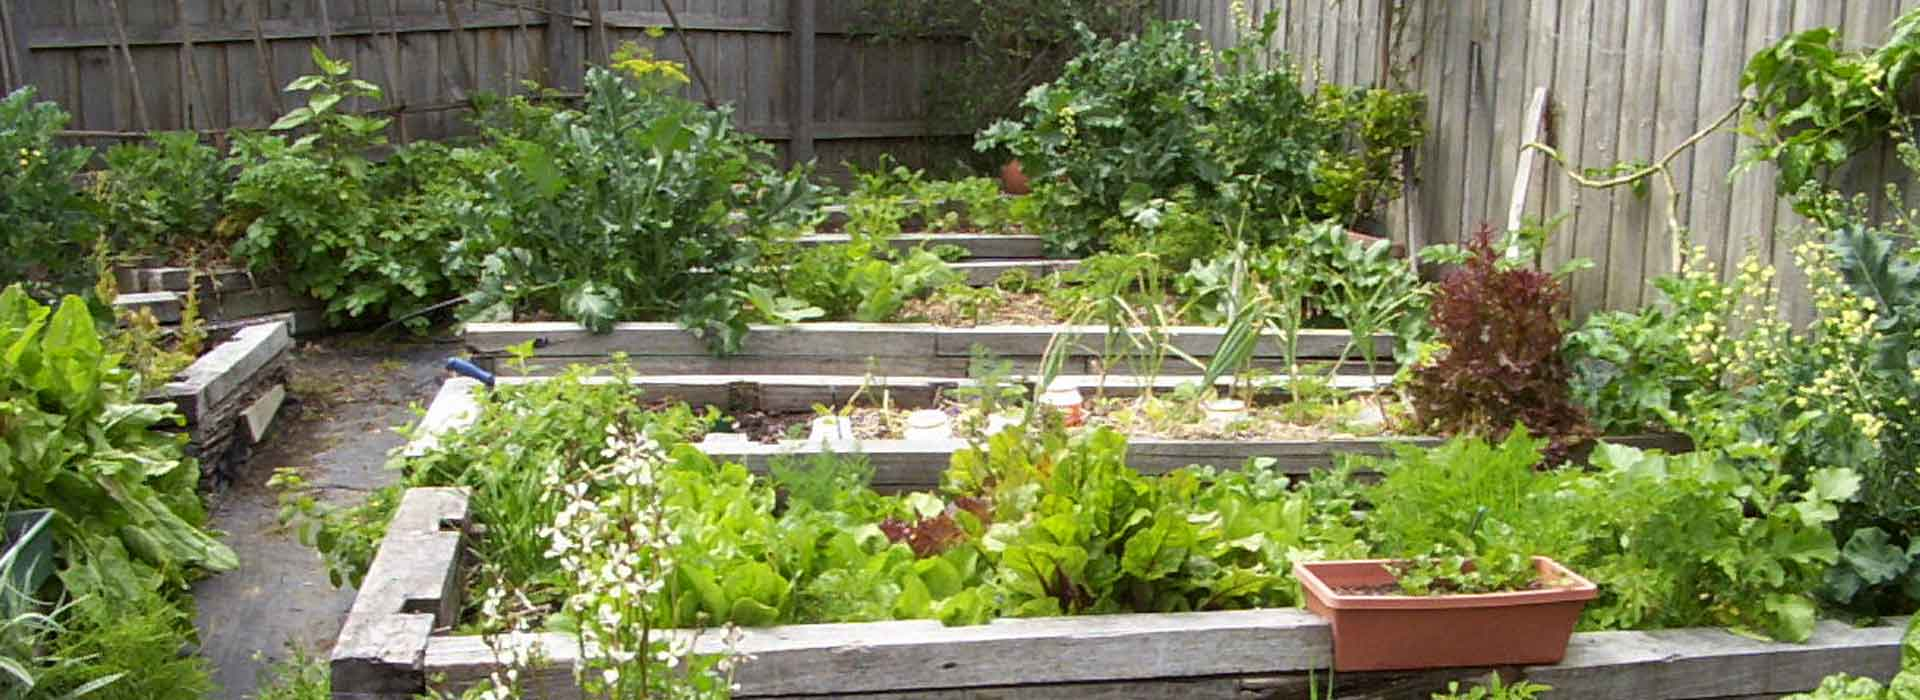 Four Bed Crop Rotation Sustainable Gardening Australia